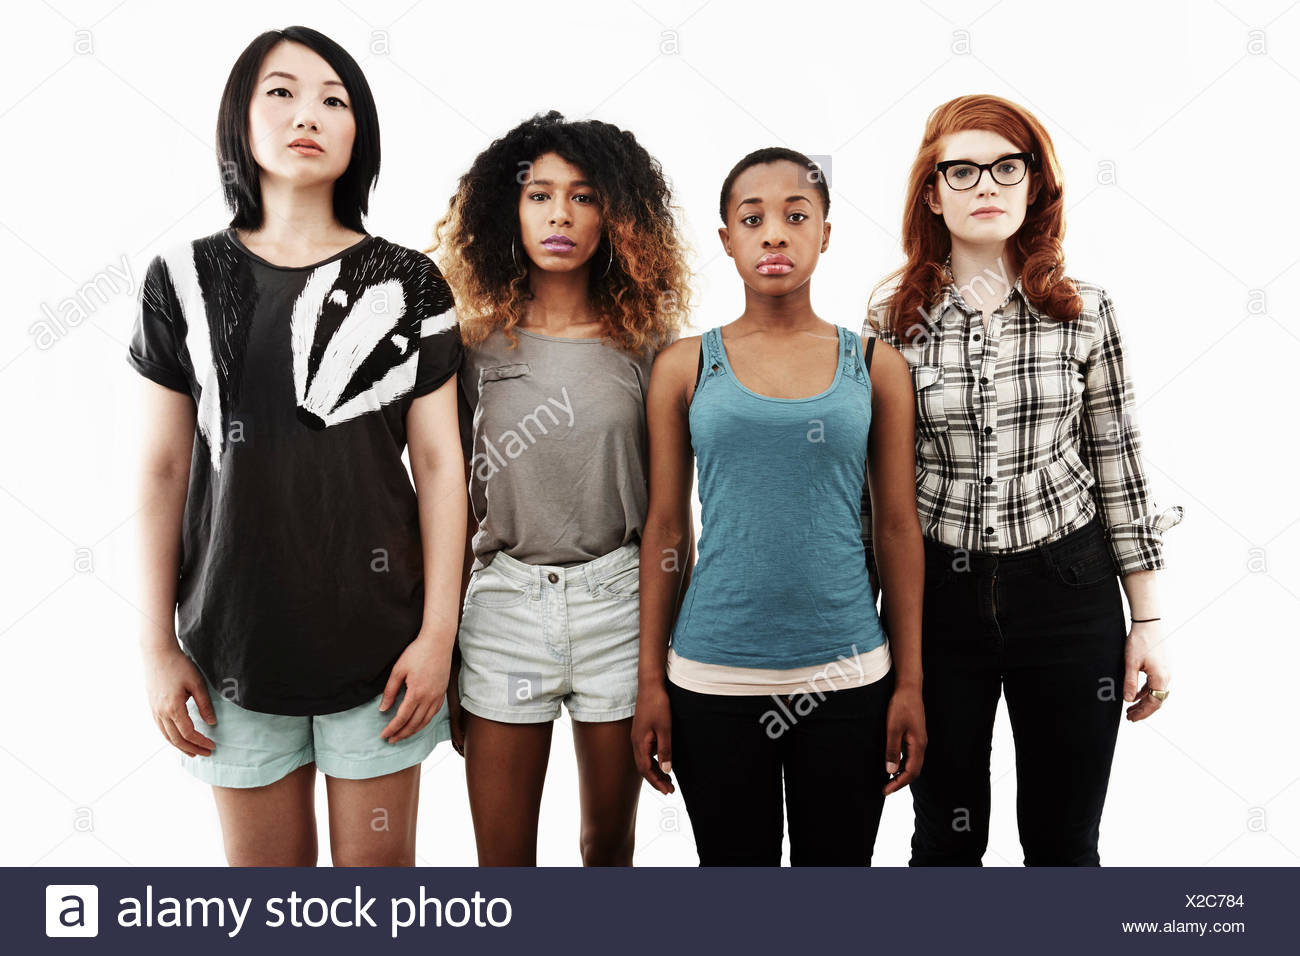 Formal studio portrait of four serious young women - Stock Image